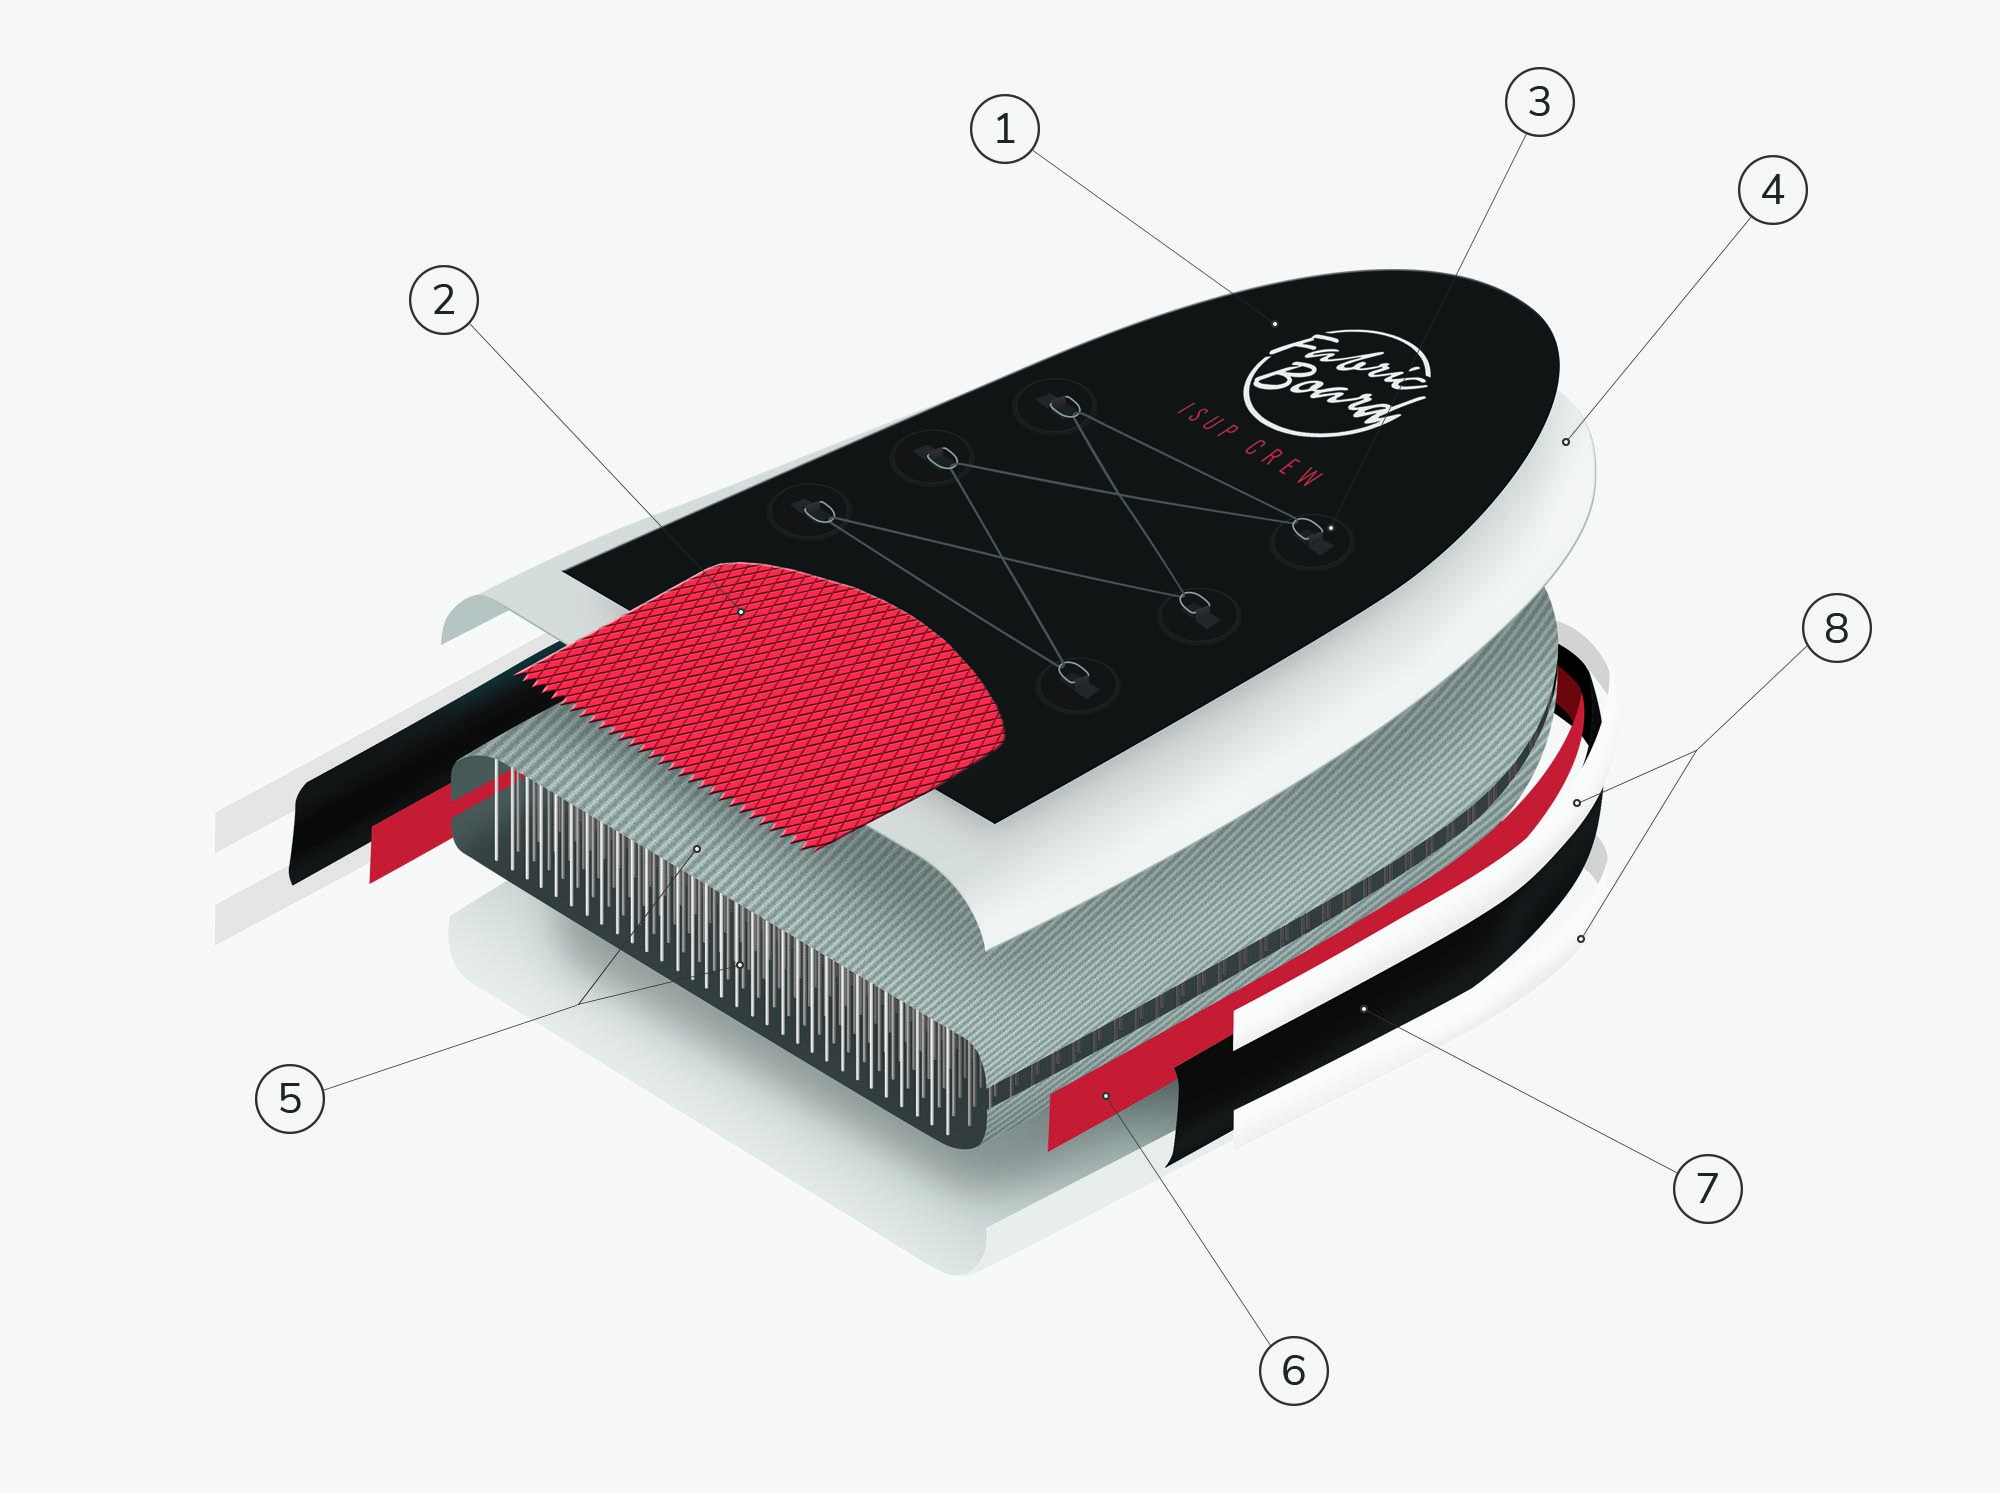 Paddle Surf Gonflable MSL Fusion Supboard Layers Scheme (Couches de surf gonflables MSL Fusion)